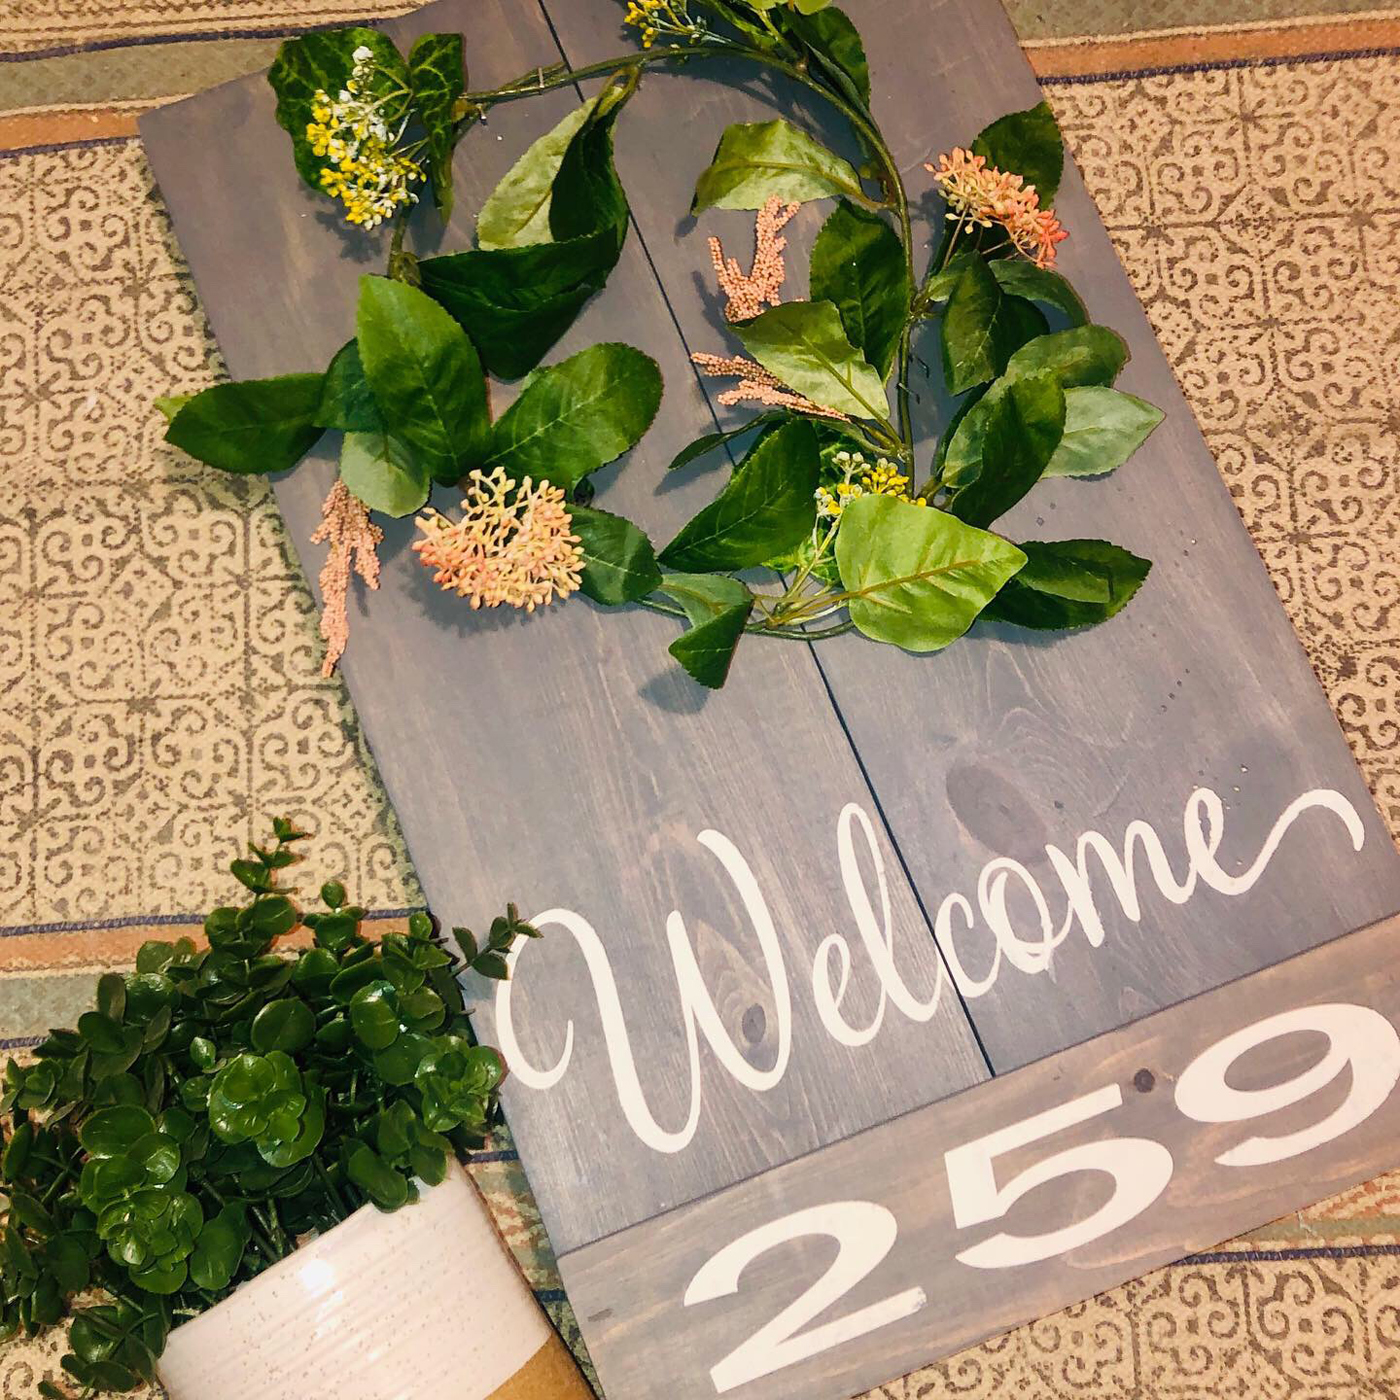 Welcome with Address and Wreath DIY Wood Sign Project